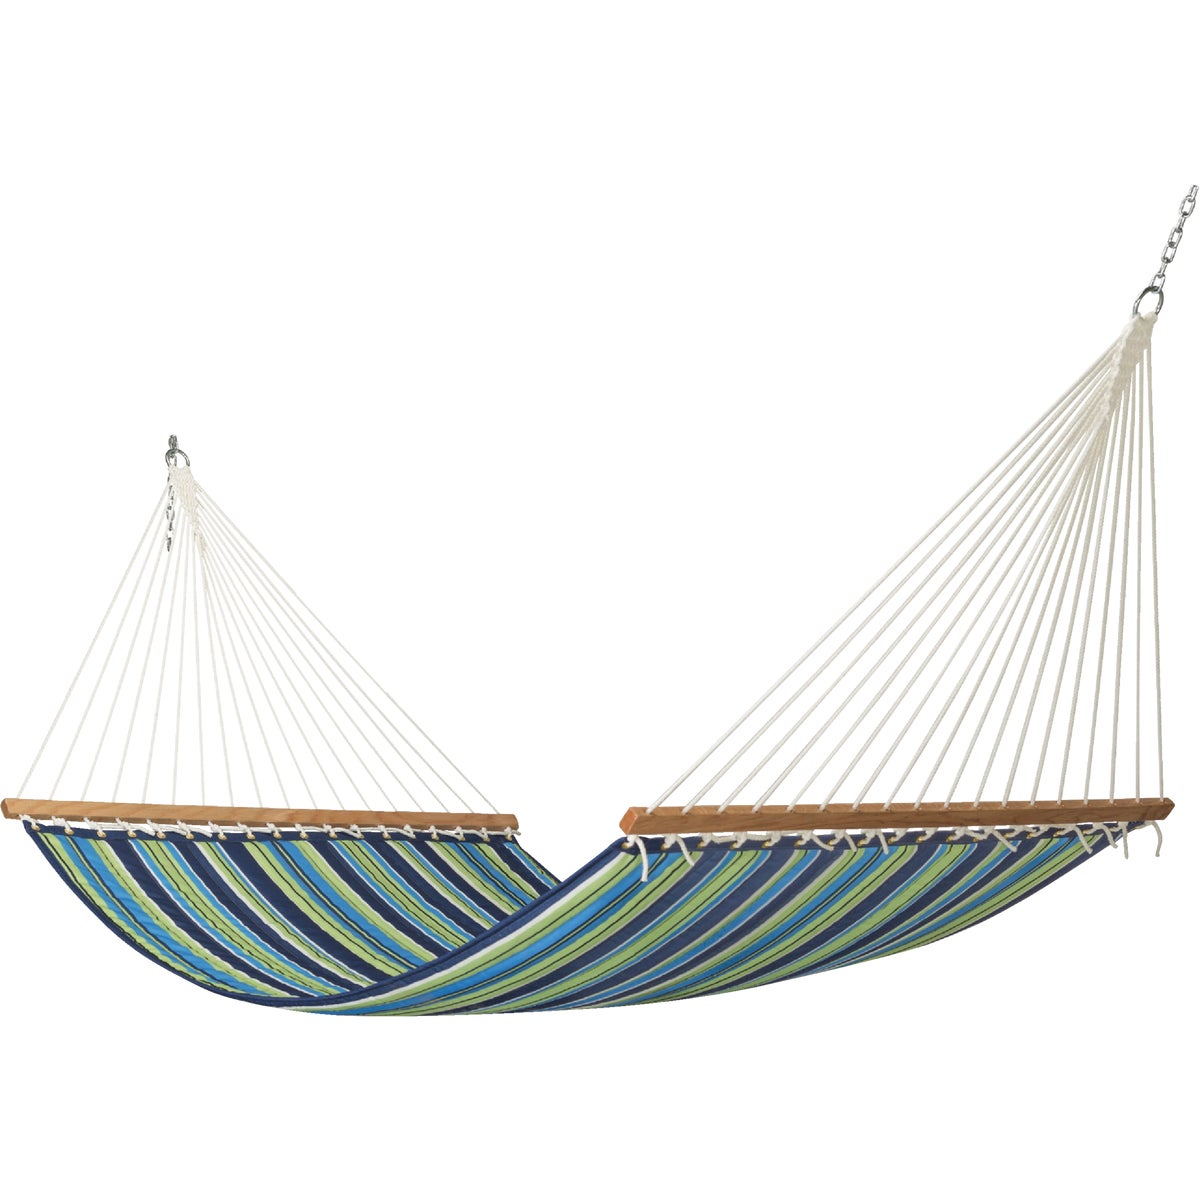 GRN STRIPE TEXT HAMMOCK - M1318G by The Hammock Source